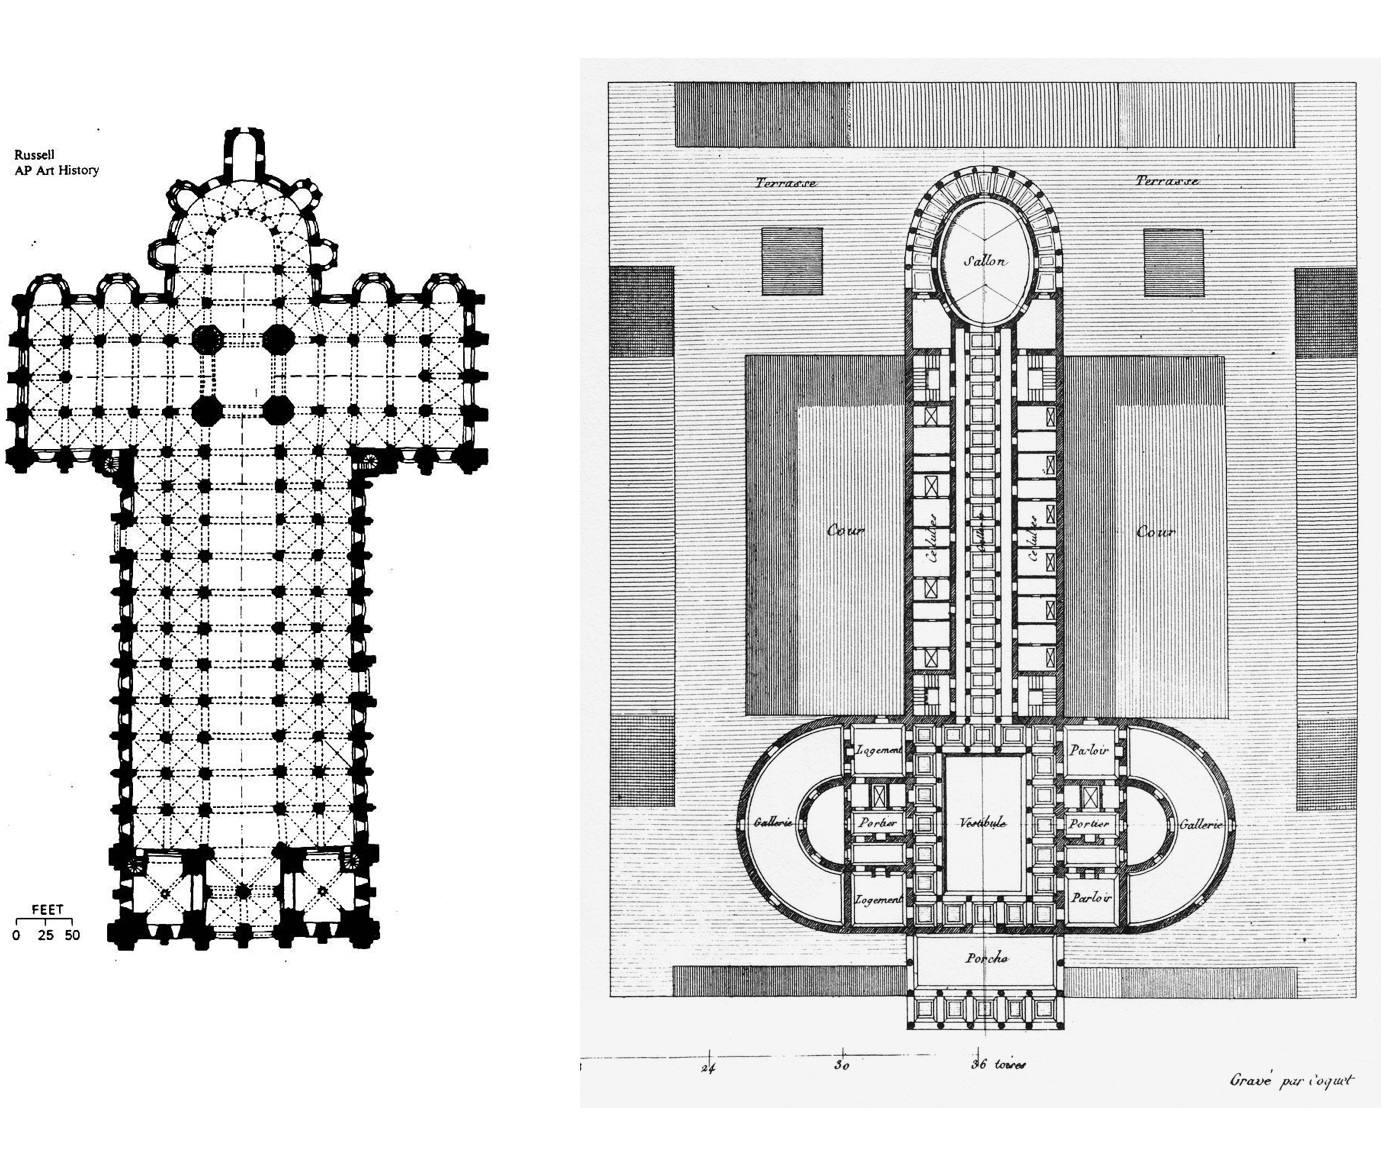 THE PLAN AS A SYMBOL The plan of the Romanesque cathedral on the left takes the shape of a cross. The plan on the right drawn by 18th century architect Nicolas Ledoux is an irreverent and rhetorical imagining of a bordello.